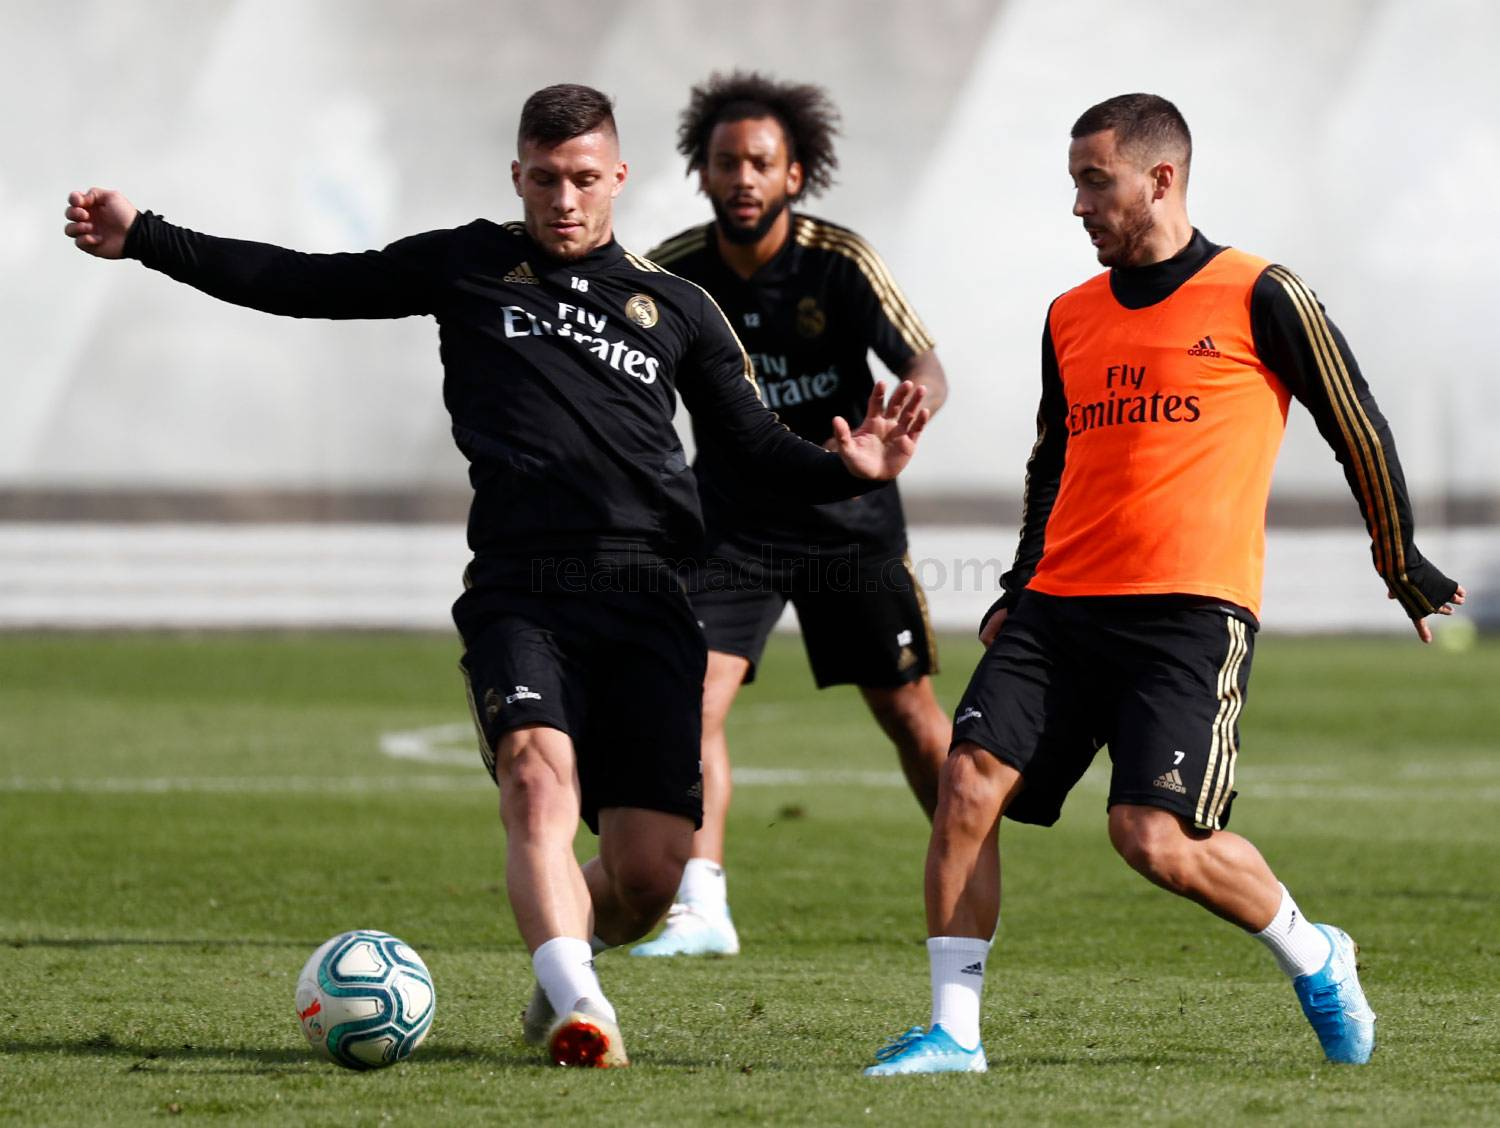 Real Madrid - Entrenamiento del Real Madrid  - 16-10-2019